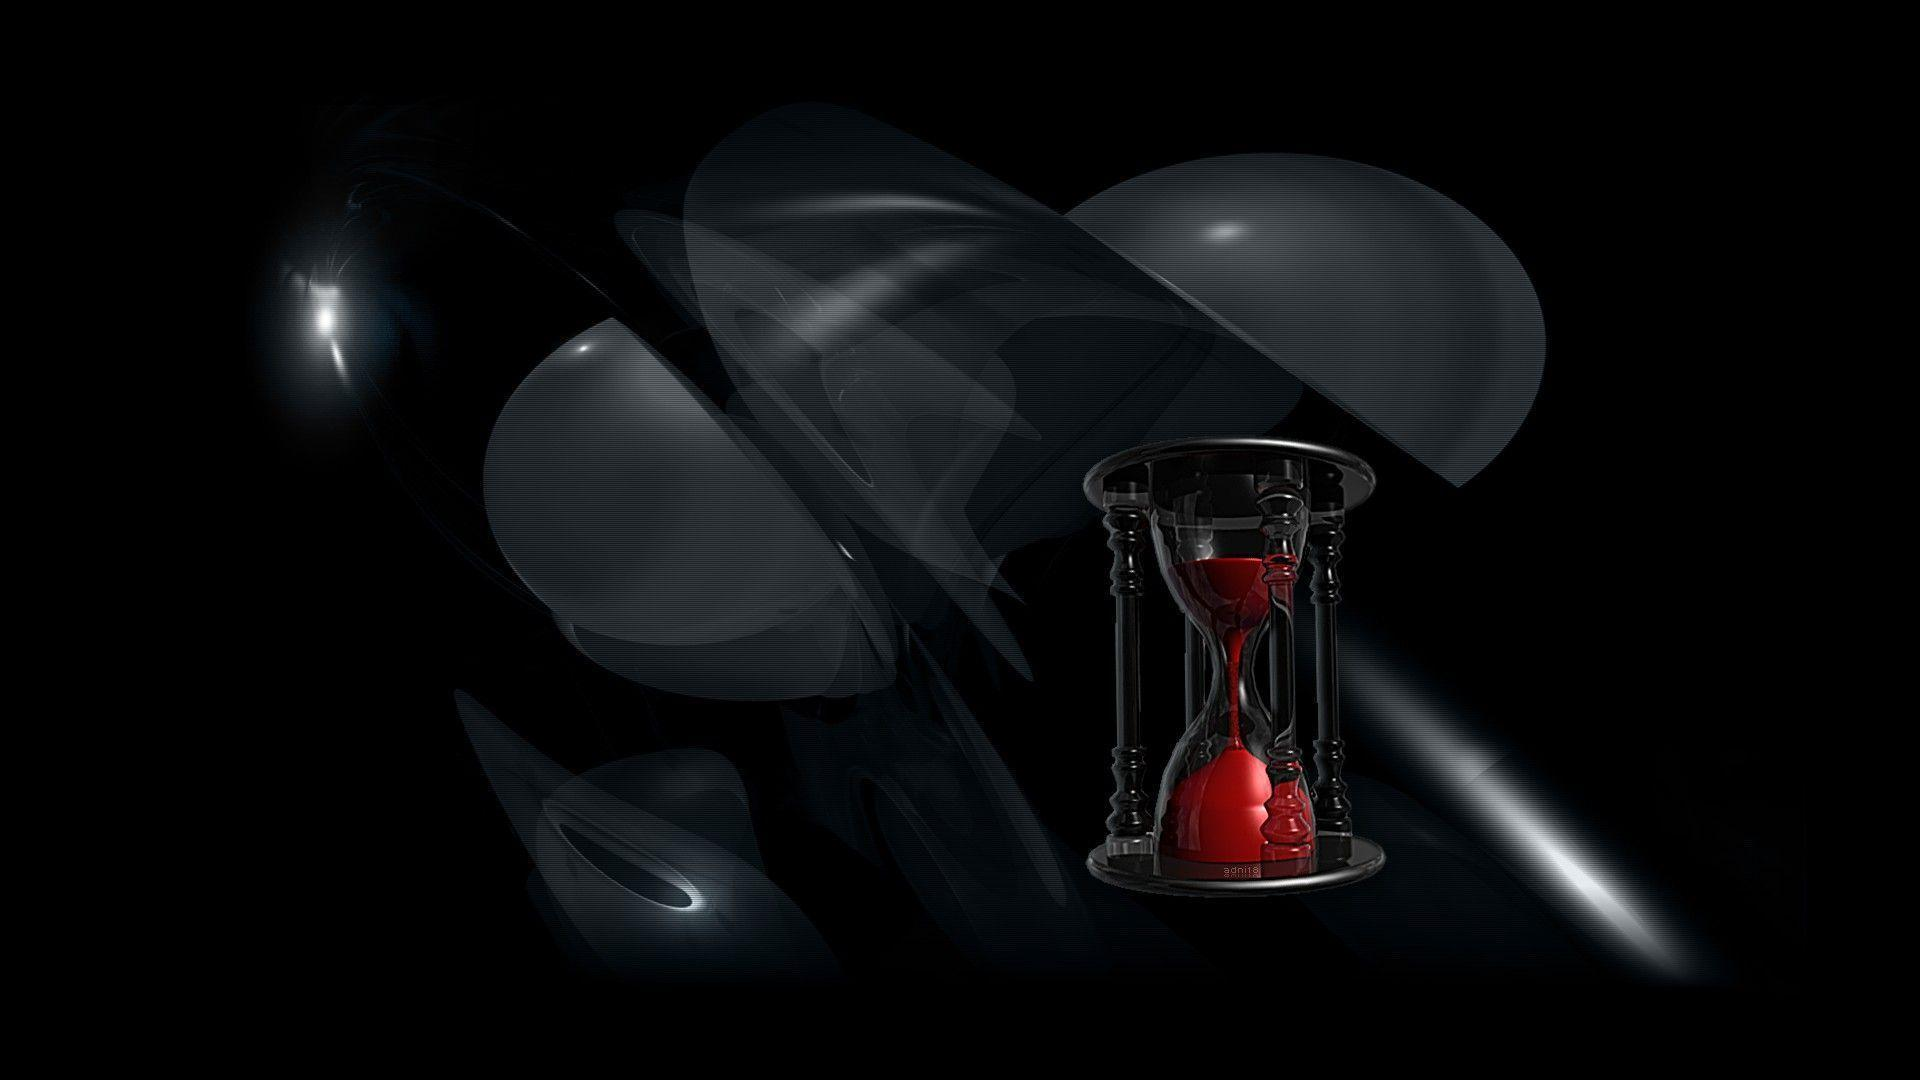 hourglass wallpapers - wallpaper cave